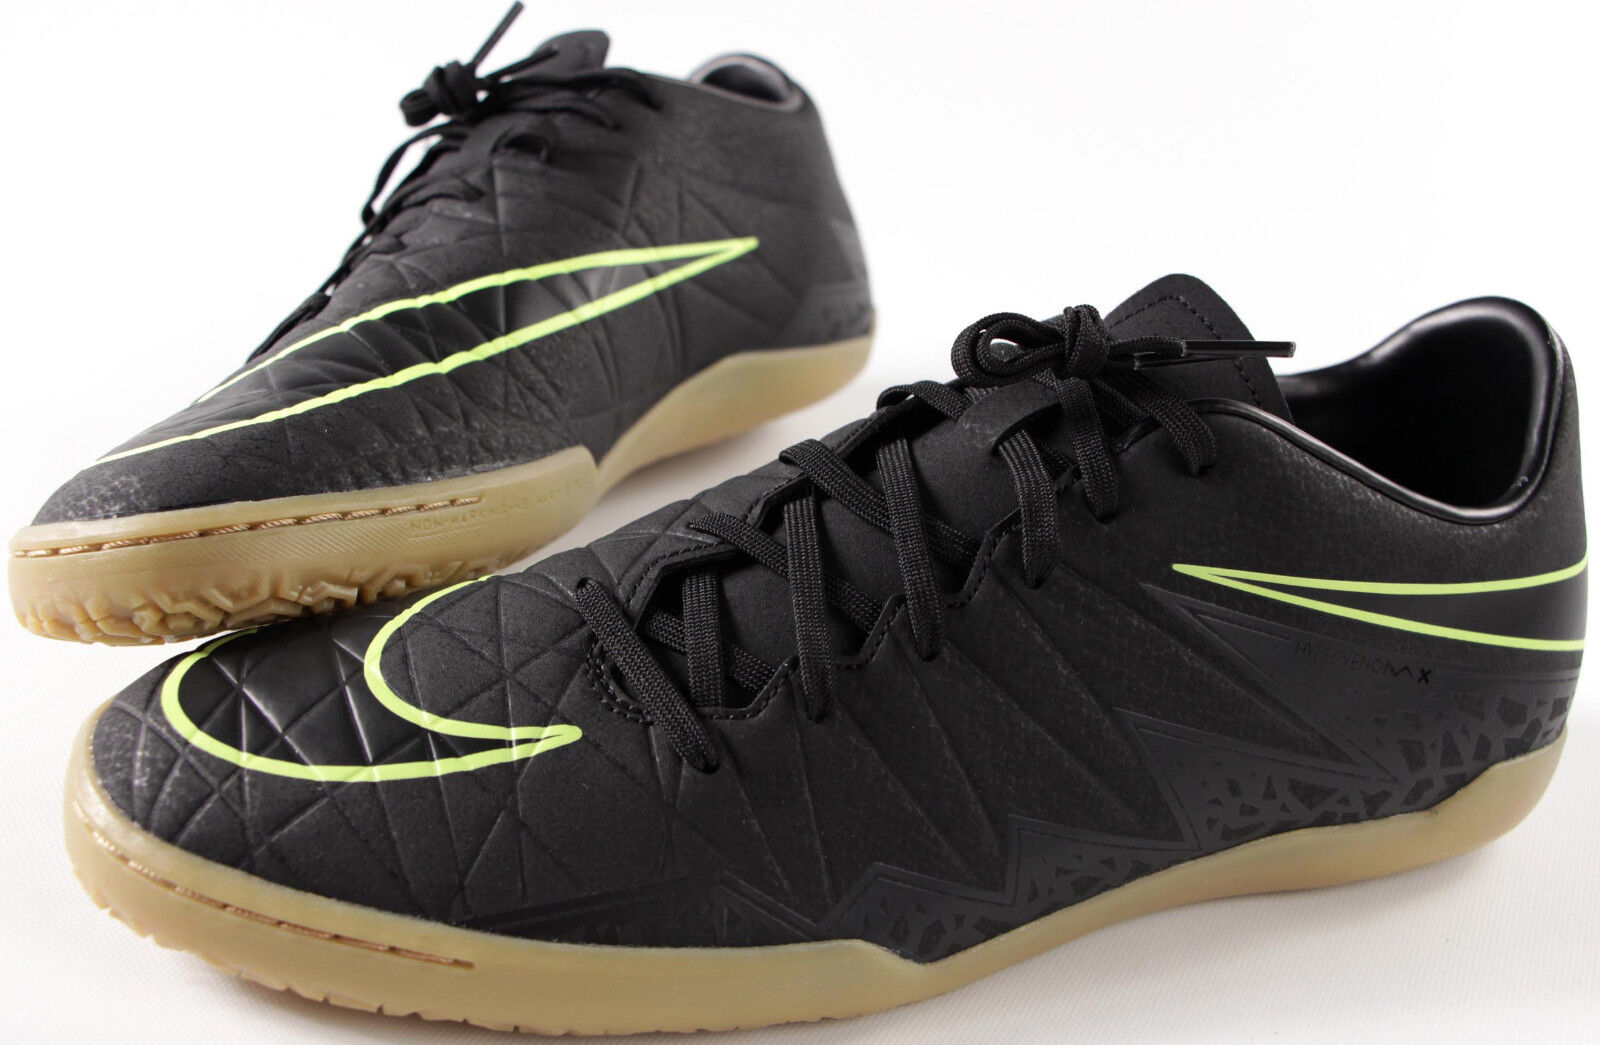 NIKE Hypervenom Phelon II IC indoor soccer shoes- NEW- black & gum sneakers